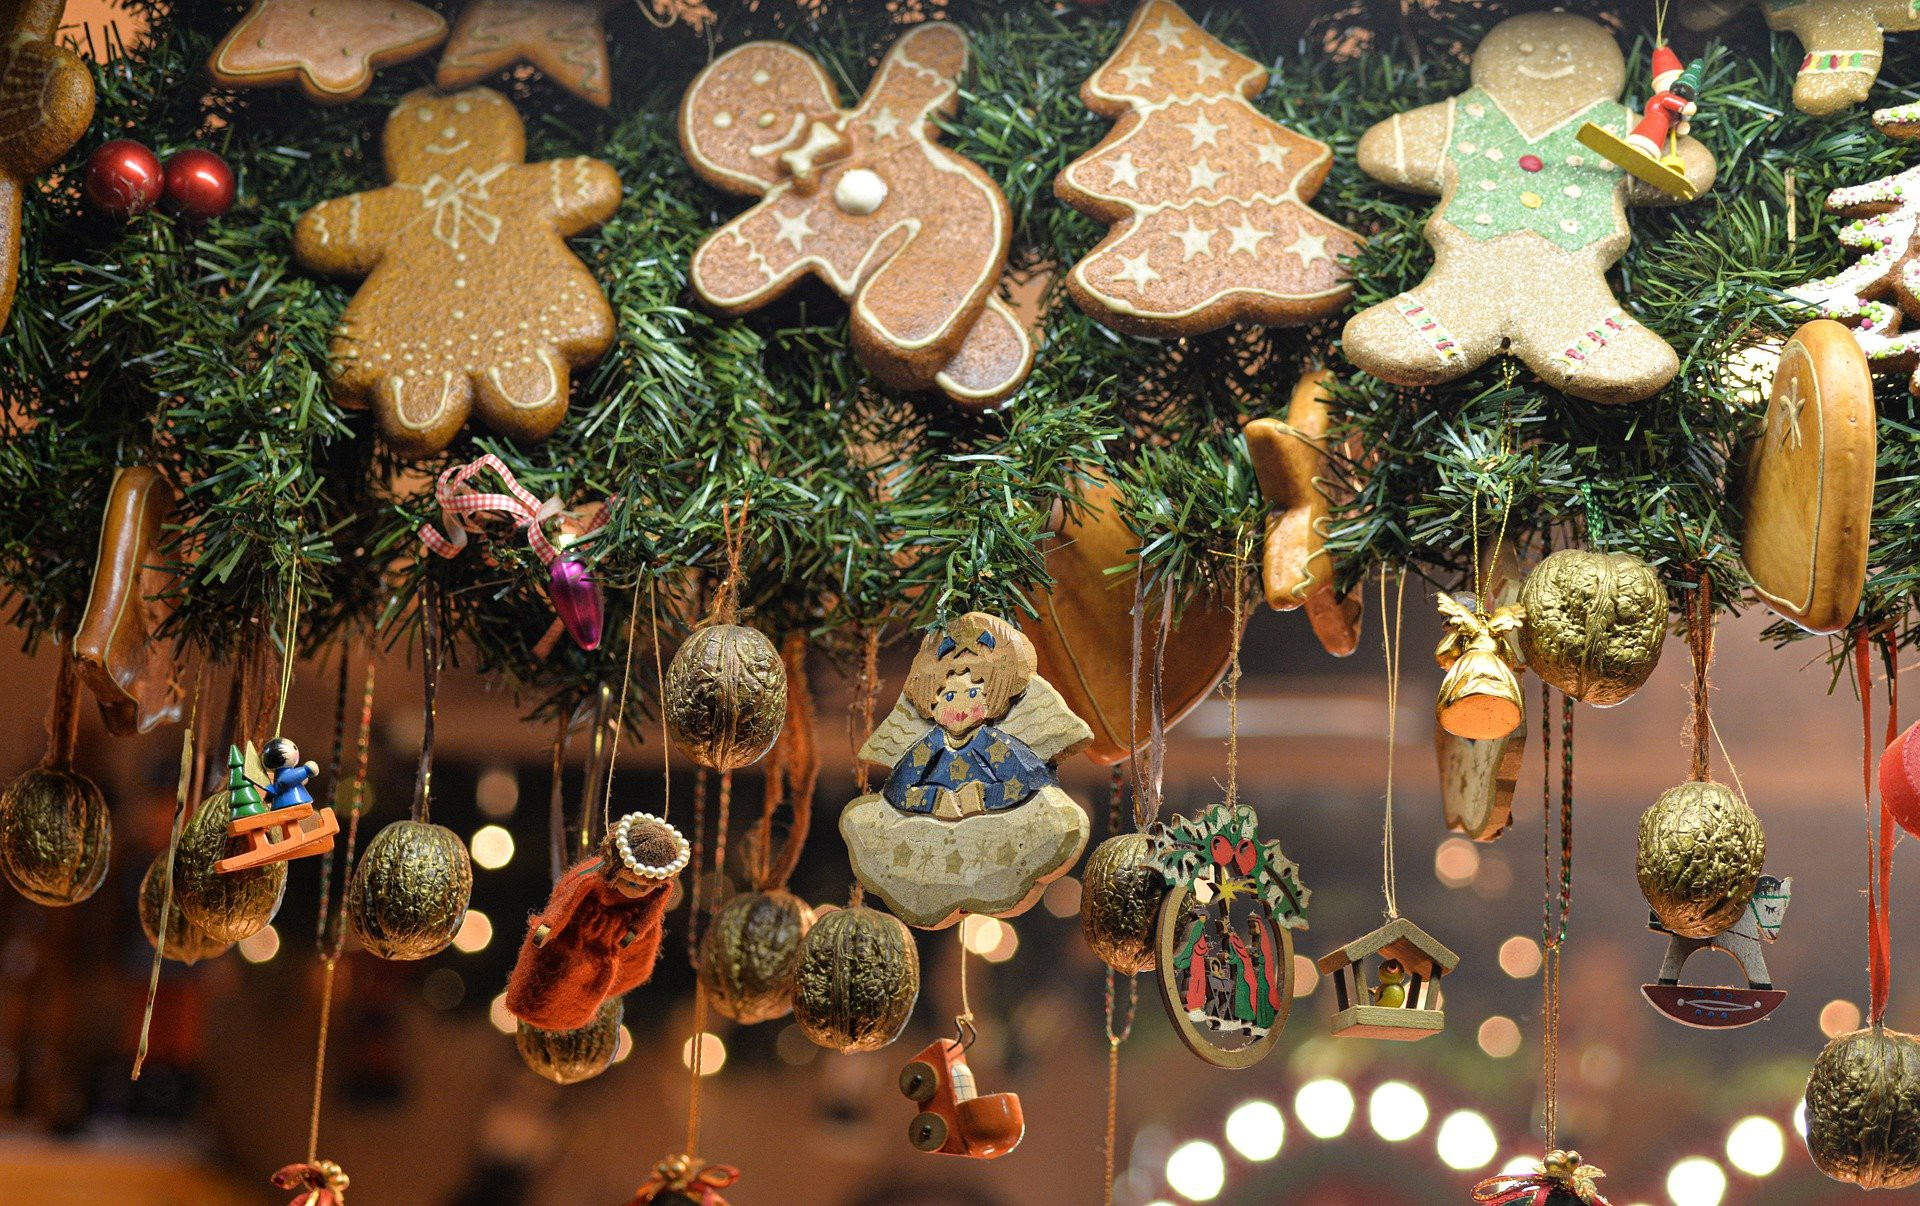 A bunch of Christmas decorations and gingerbread men are hanging in the air, onto a birghtly lit background.